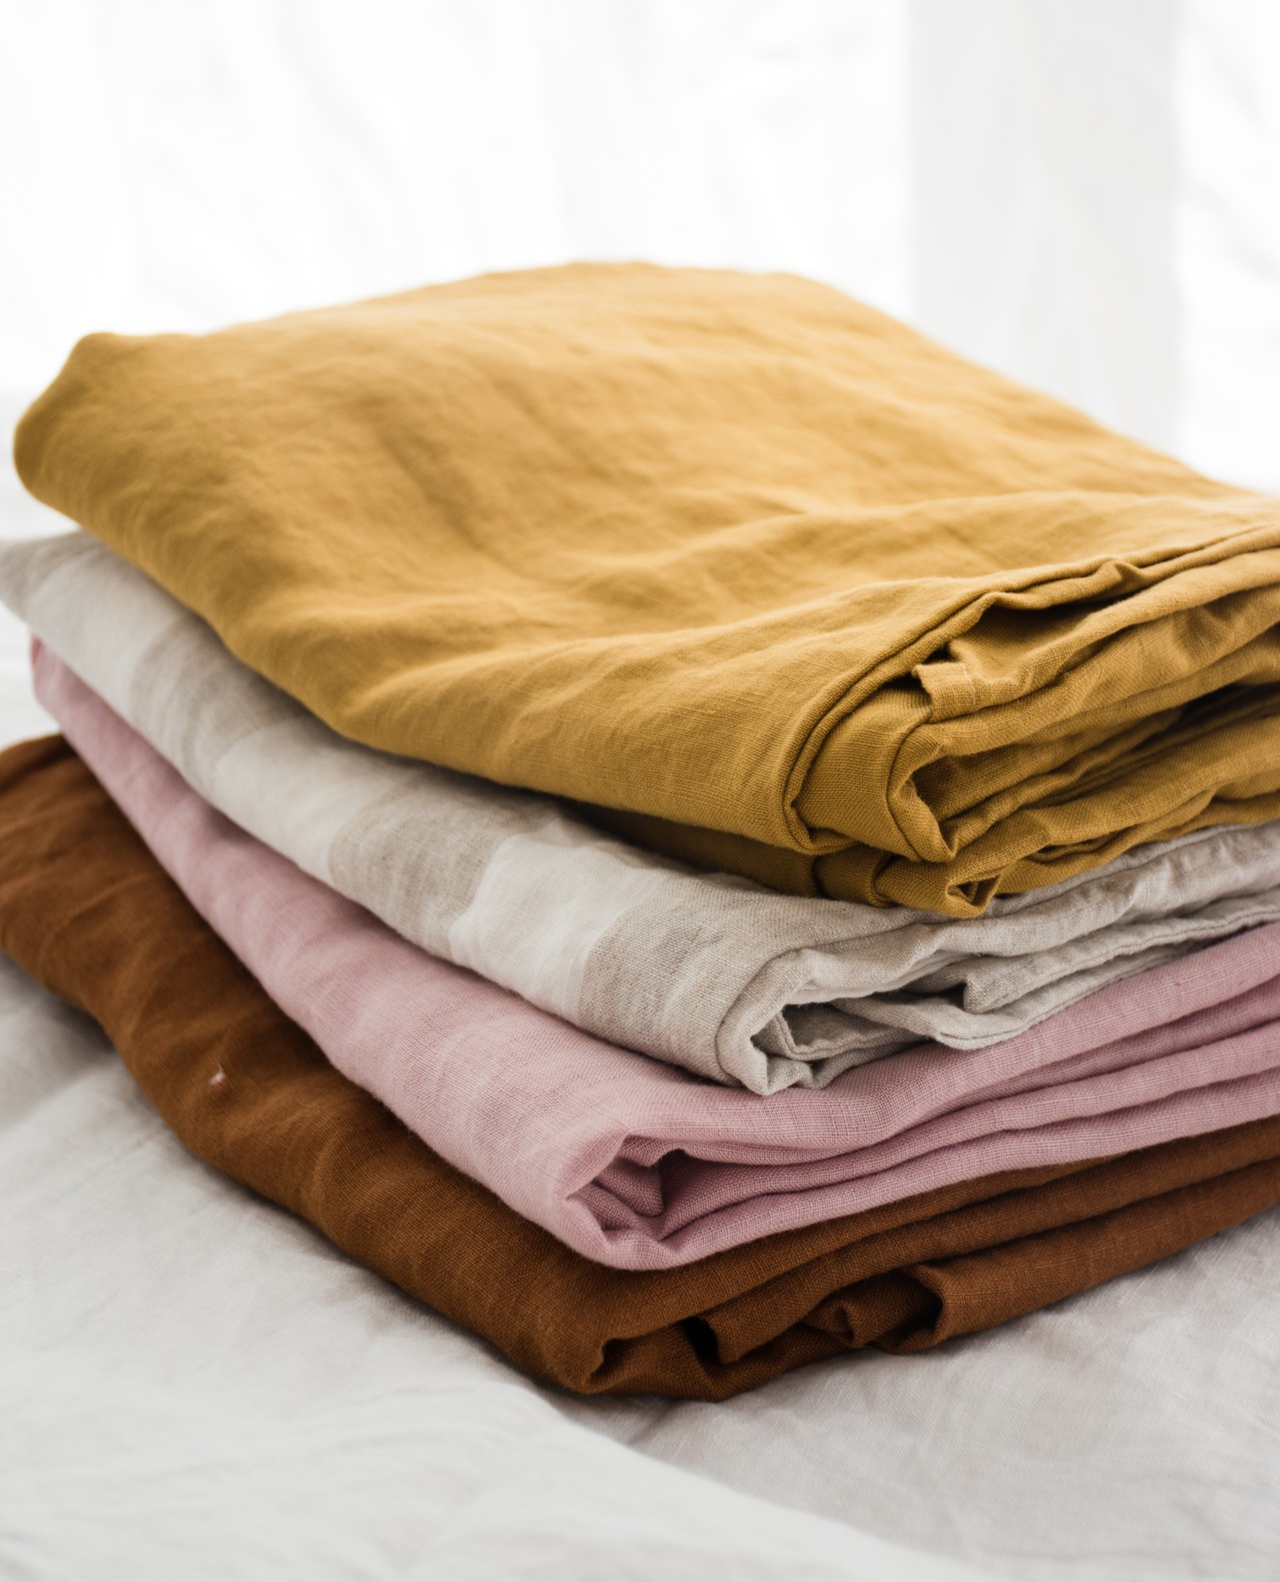 A French flax linen stack of Mustard, Thick Stripe, Wildflower Pink & Ochre. All of these colours can be mixed and matched and styled in your own personal heaven. Shope thee styles now.